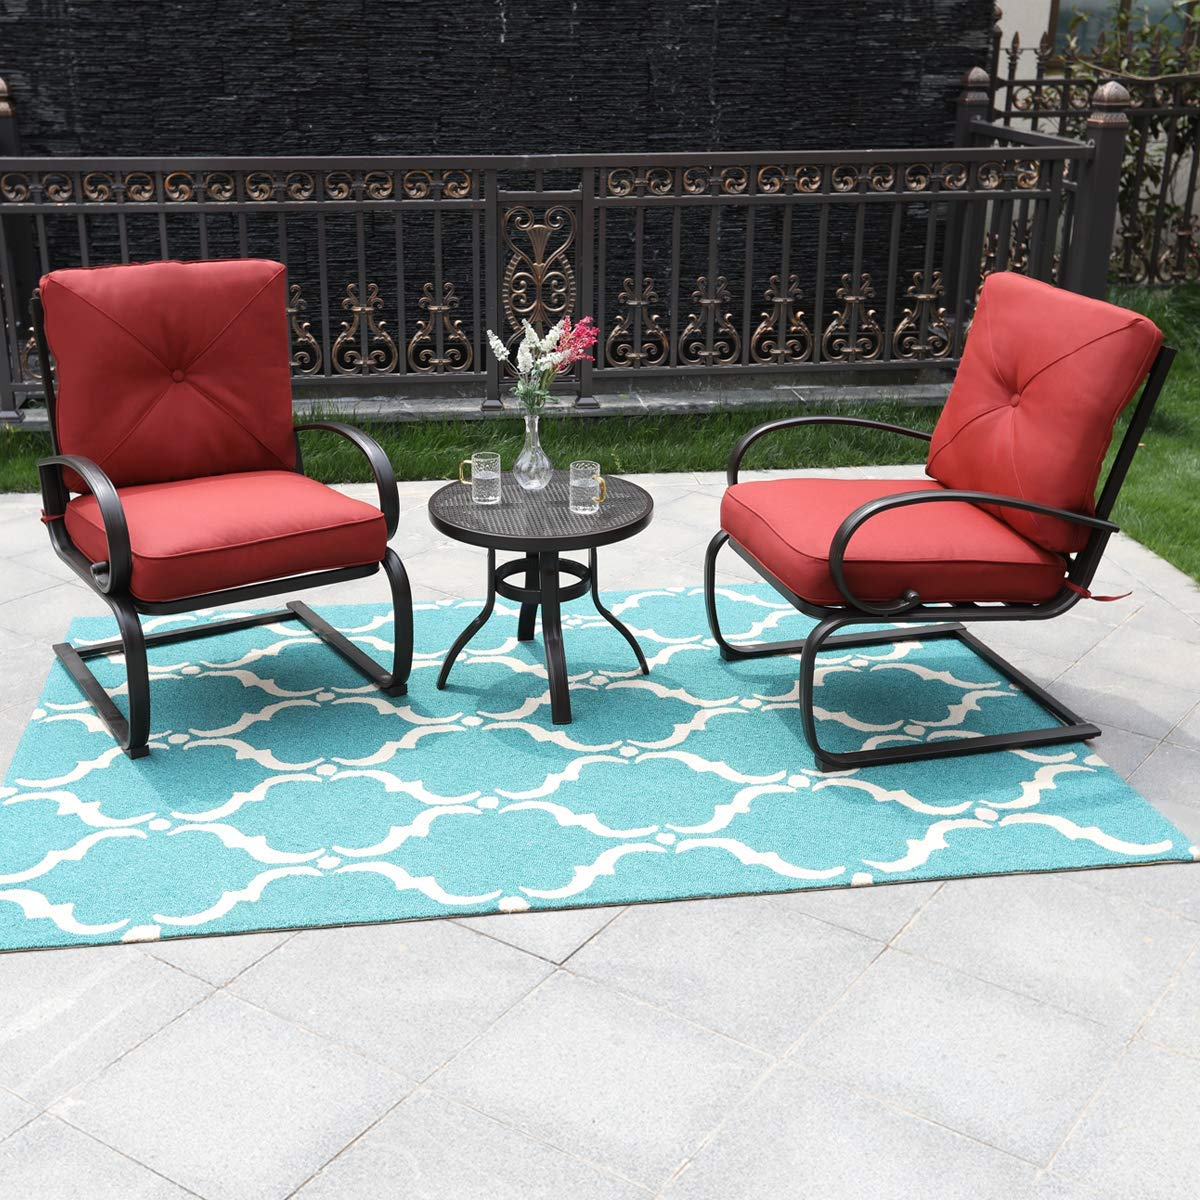 PHI VILLA Outdoor C-Spring Metal Lounge Cushioned Chairs Set - Red